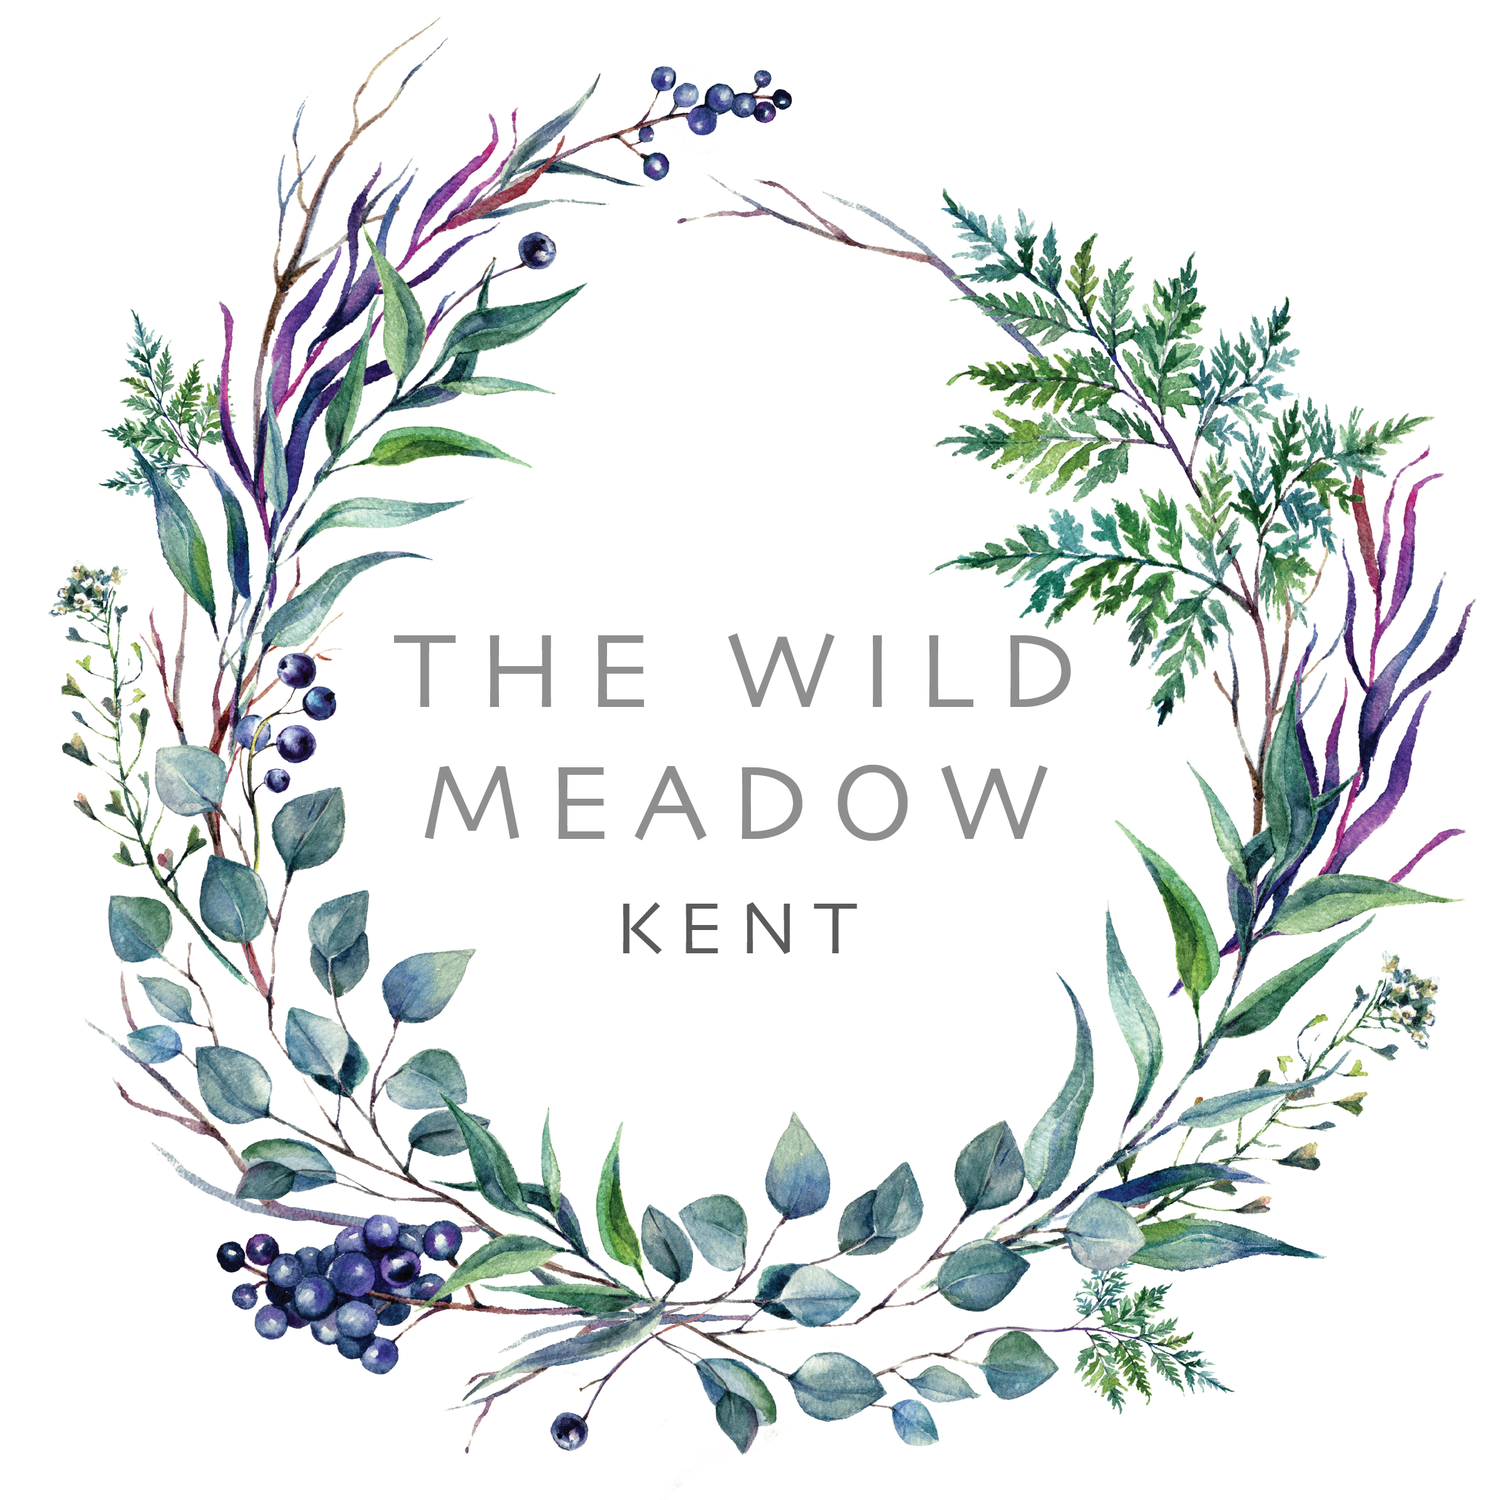 The Wild Meadow